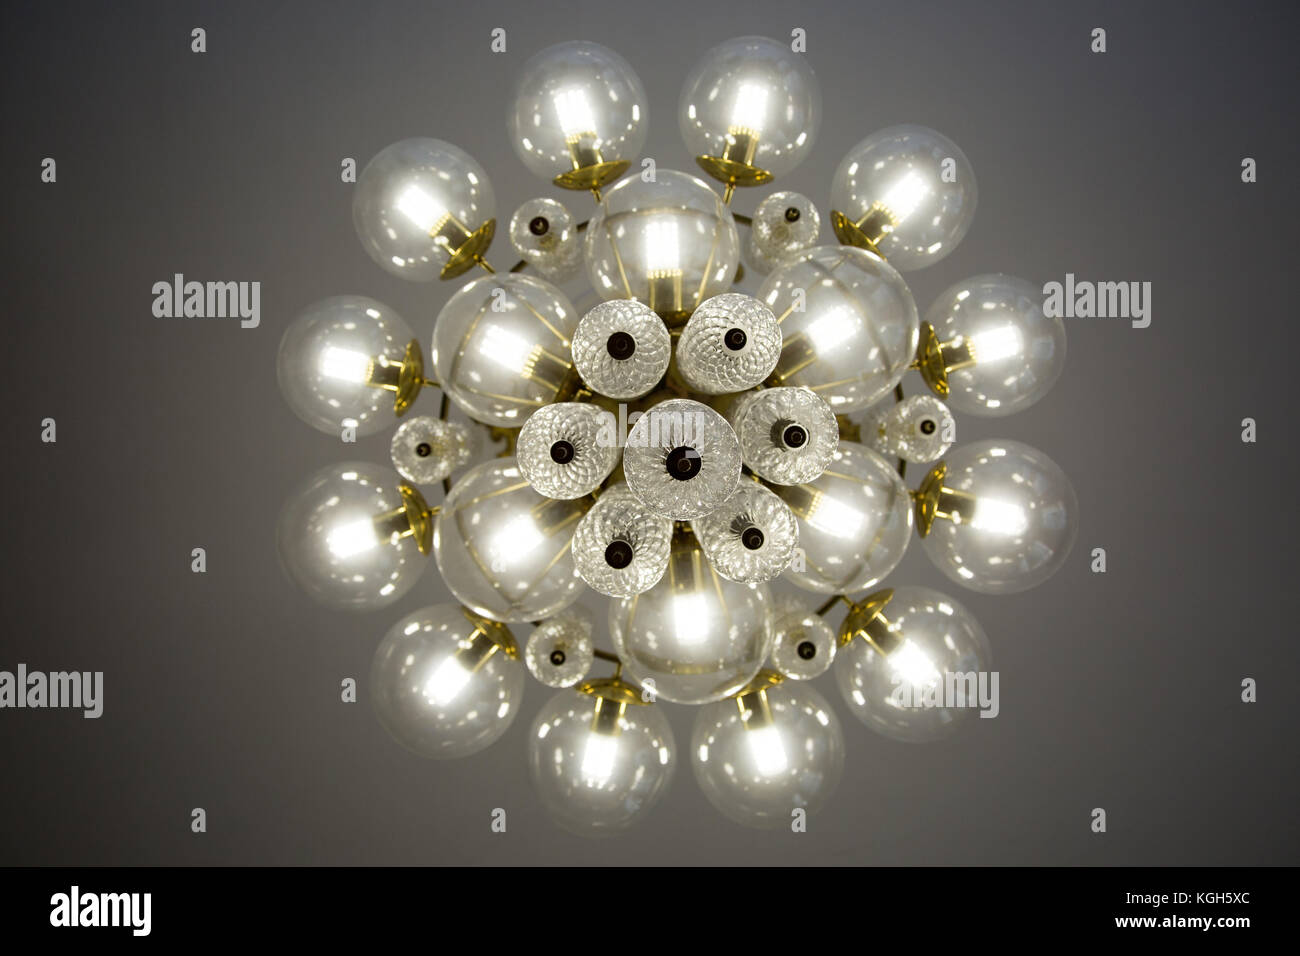 Crystal glass chandelier view from bottom round shape round glass crystal glass chandelier view from bottom round shape round glass bulb covers lit energy efficient light bulbs arubaitofo Gallery